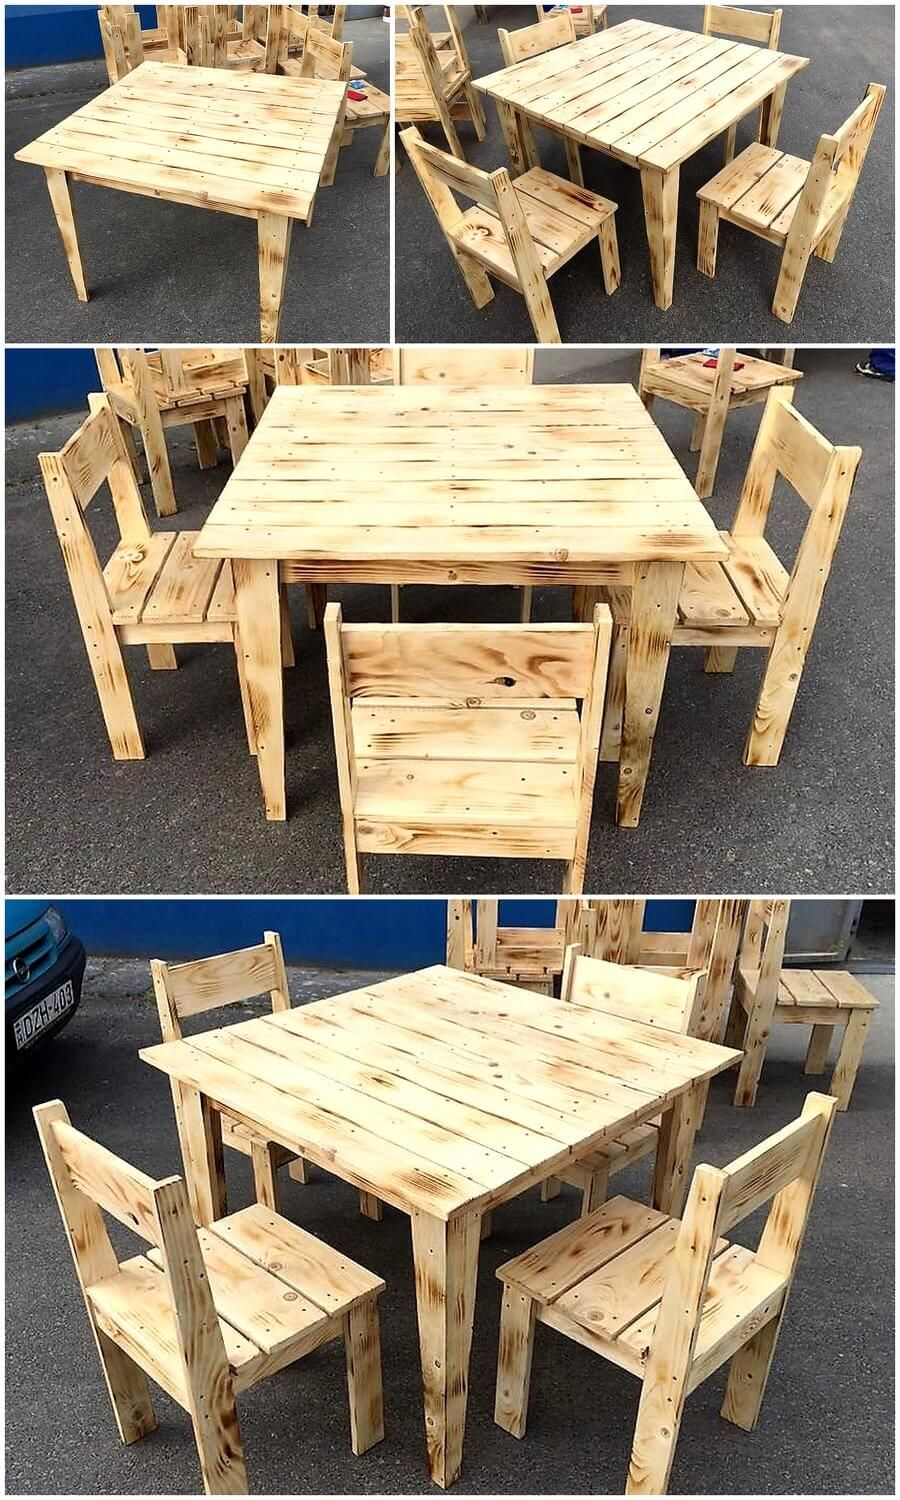 Simple Furniture Set Made With Pallets Wood Meubles En Bois De